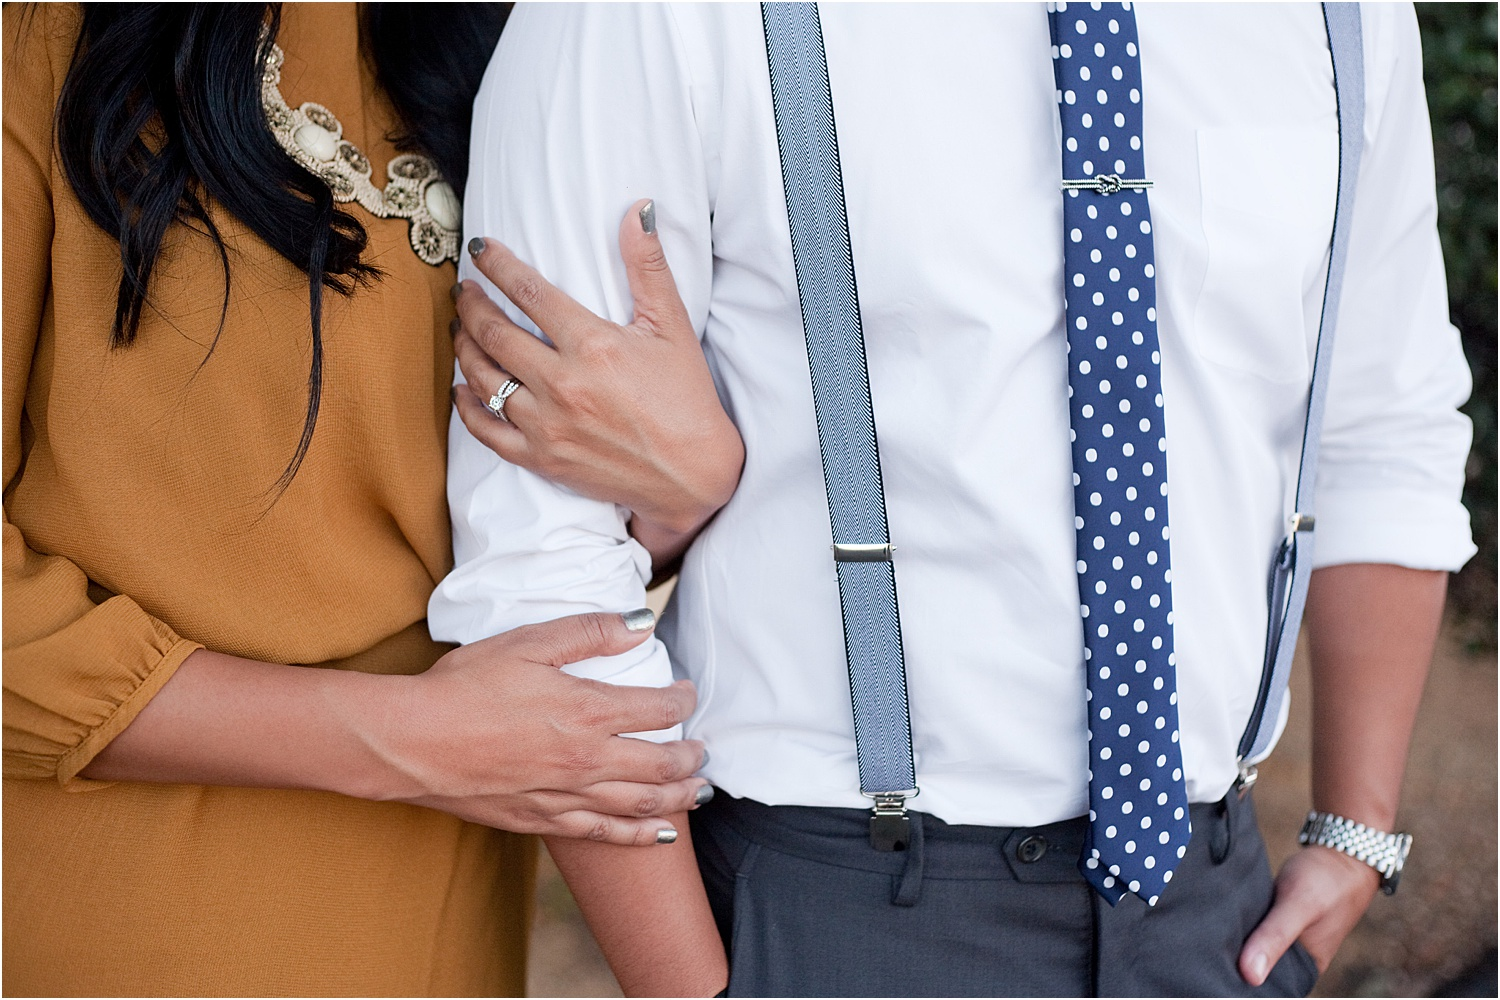 16 - Guide to the Best Poses for Engagement Photos